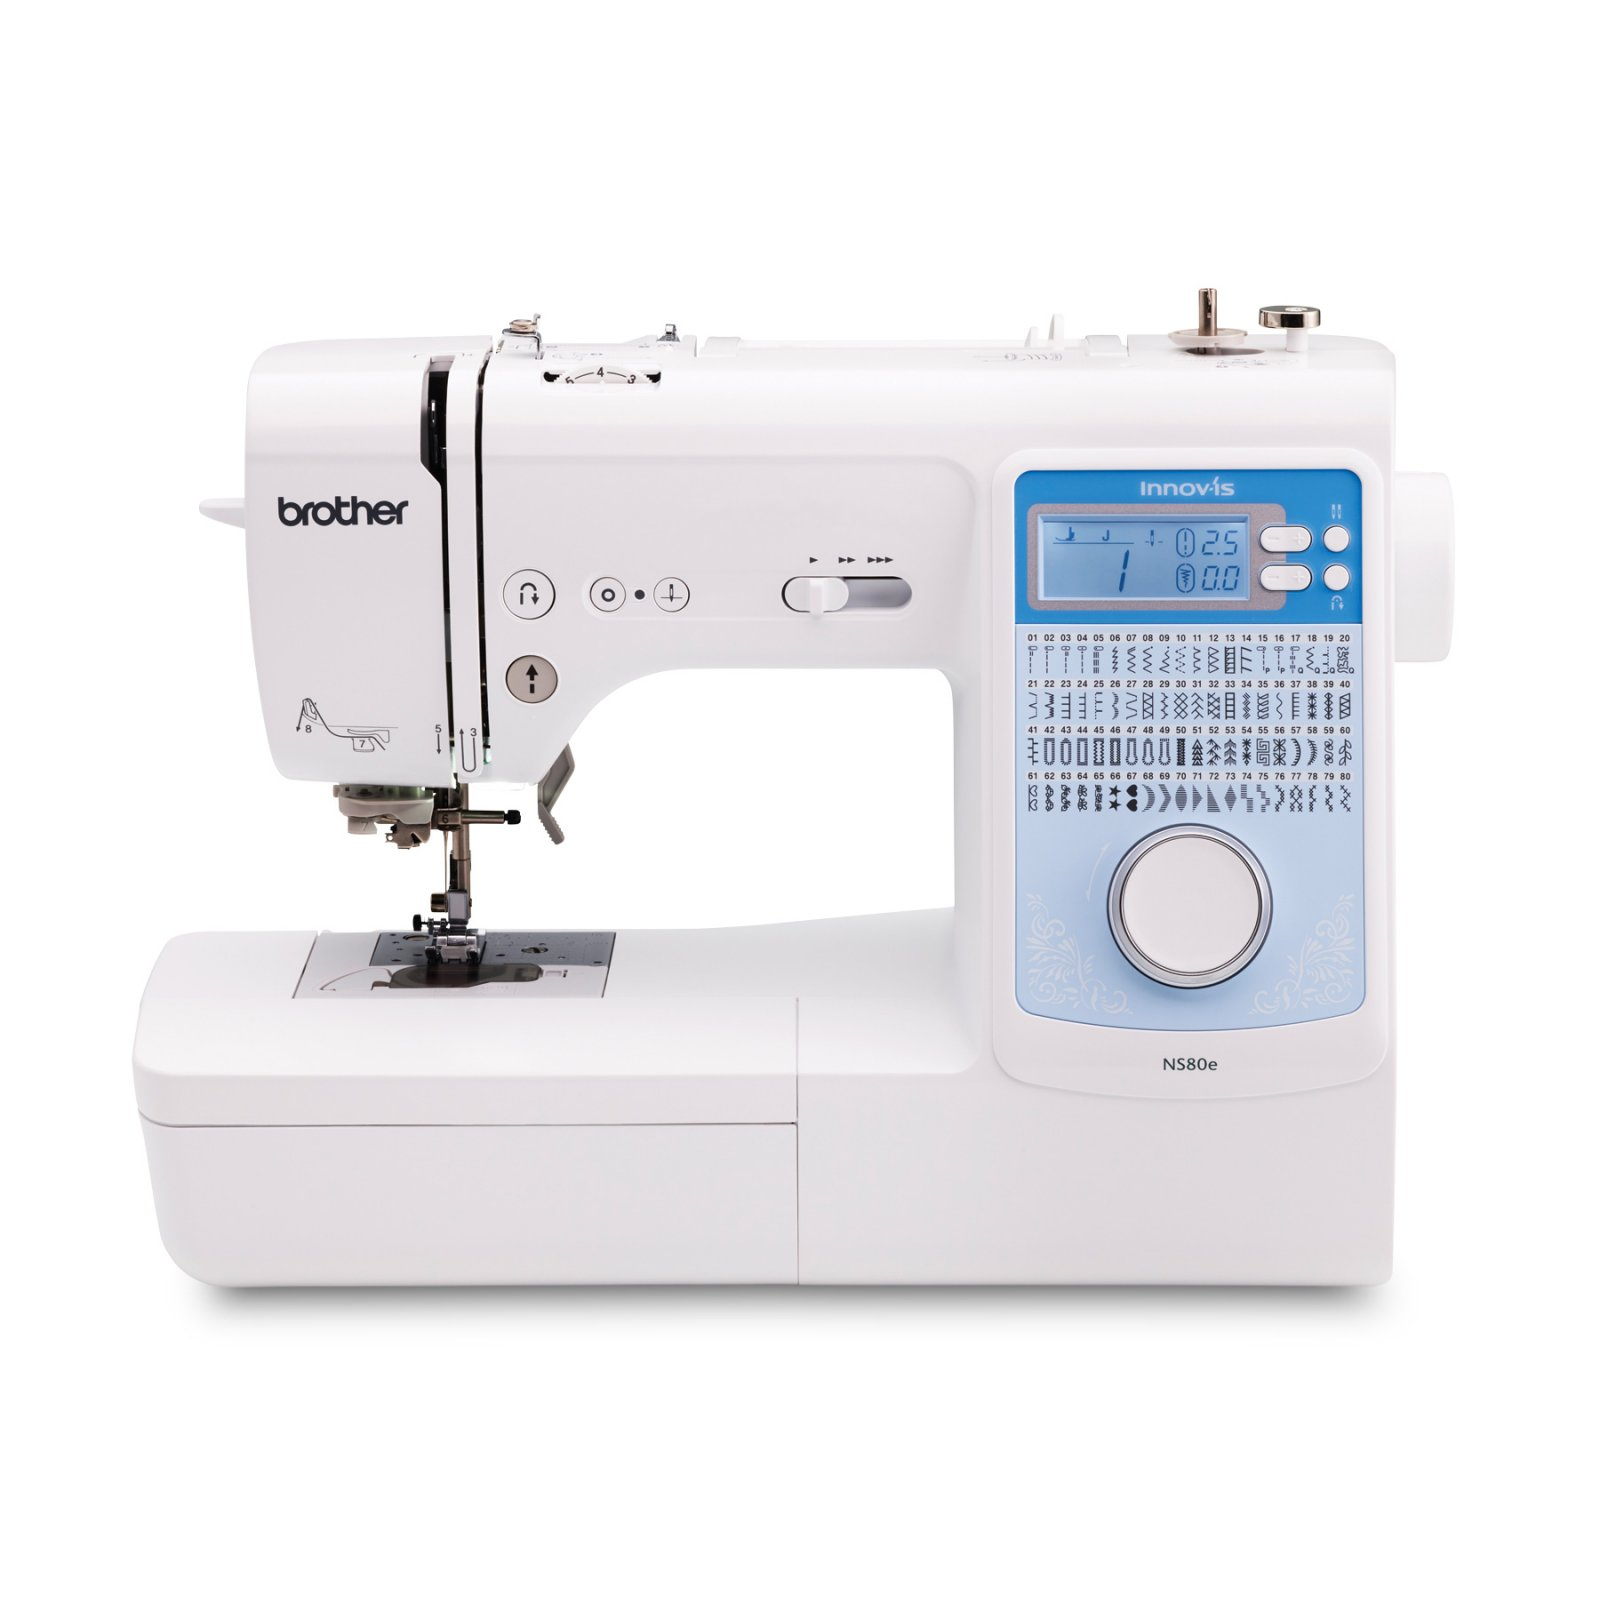 Brother Design Star 2 NS80e Reg $809.99 Now $489.99